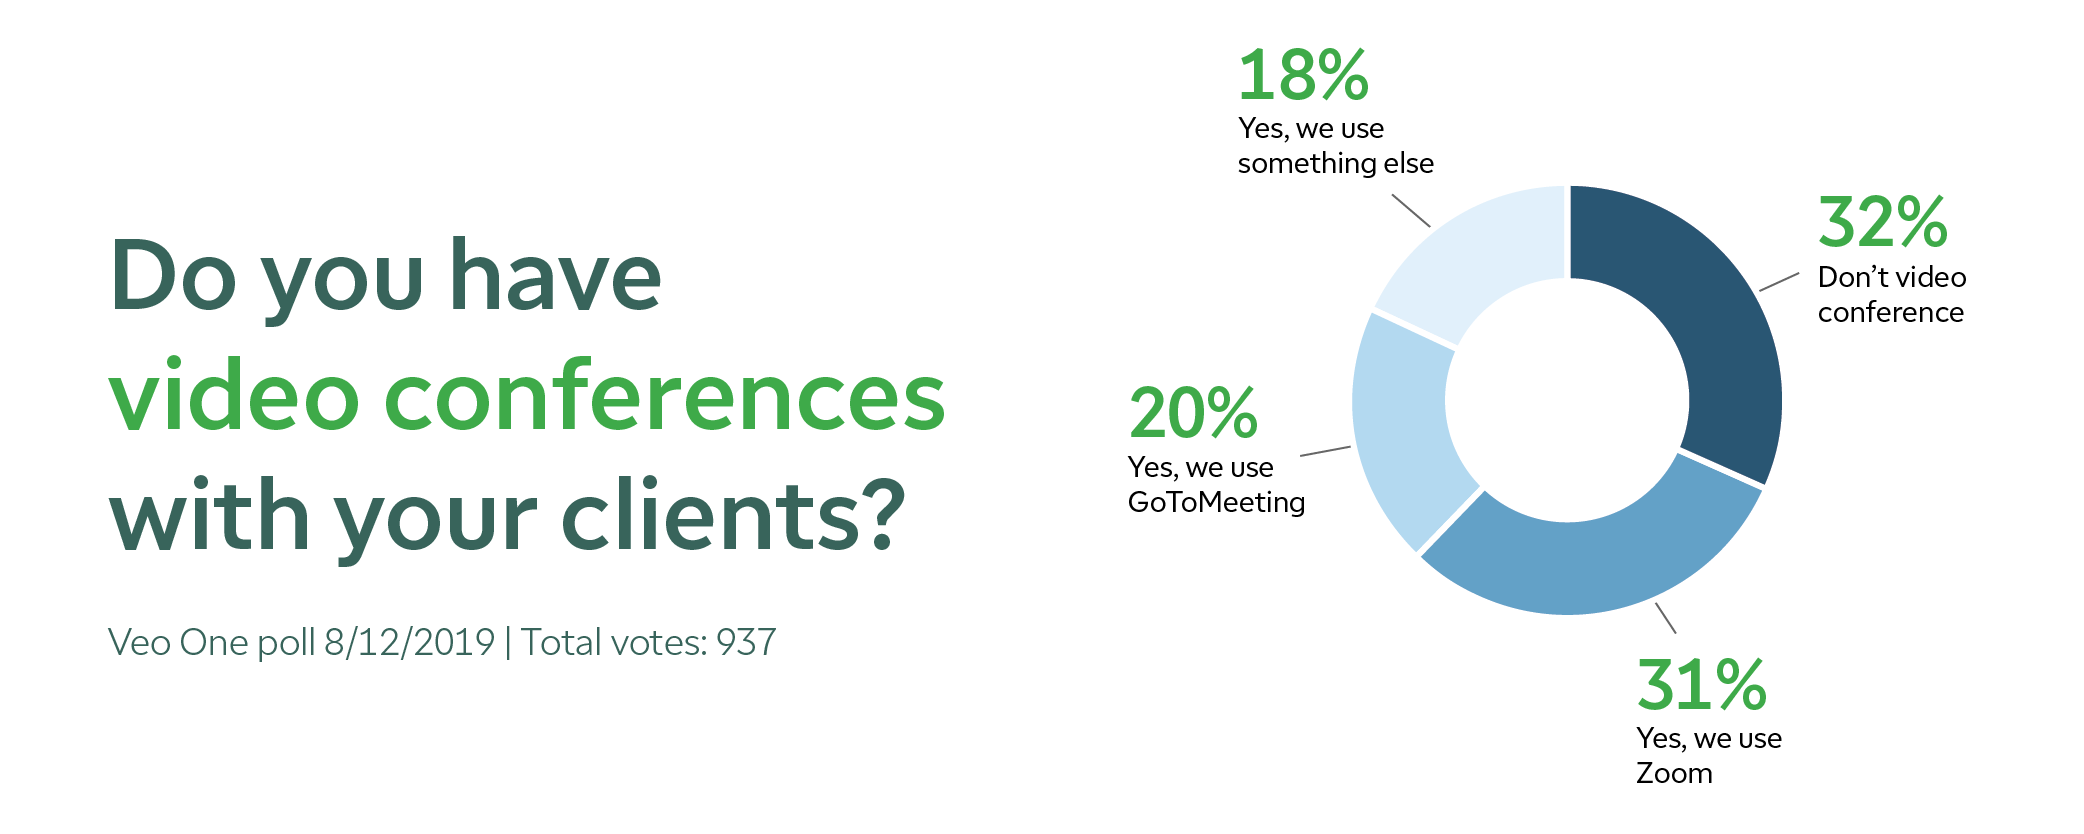 A poll showing the results of the percentage of RIAs that use video conferencing